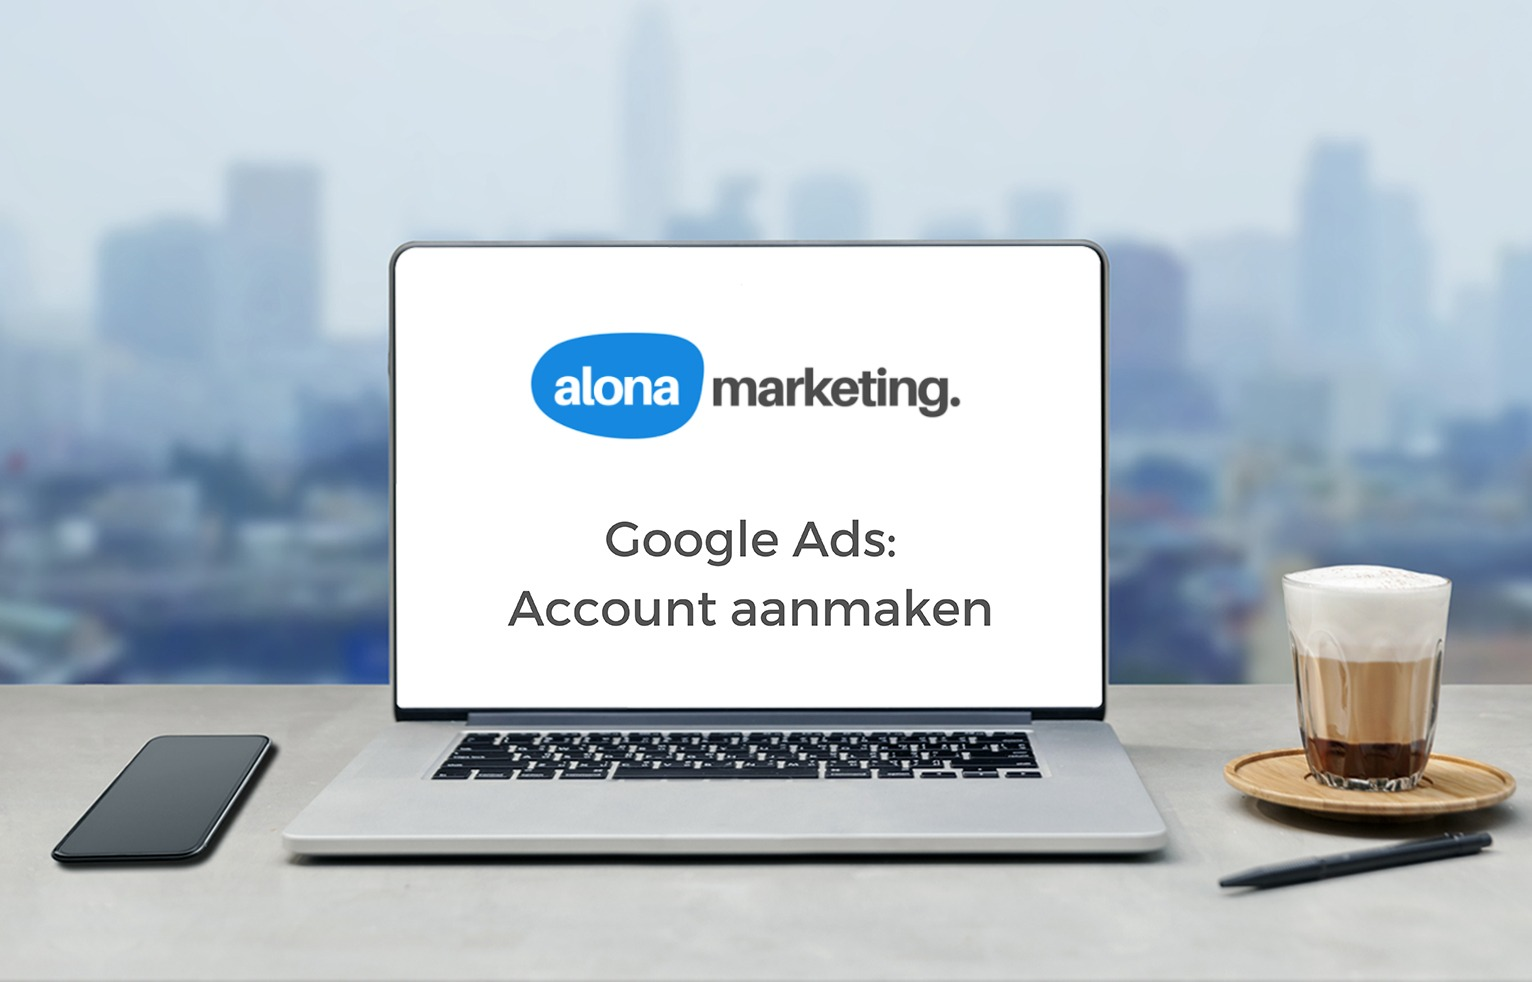 Google Ads account aanmaken